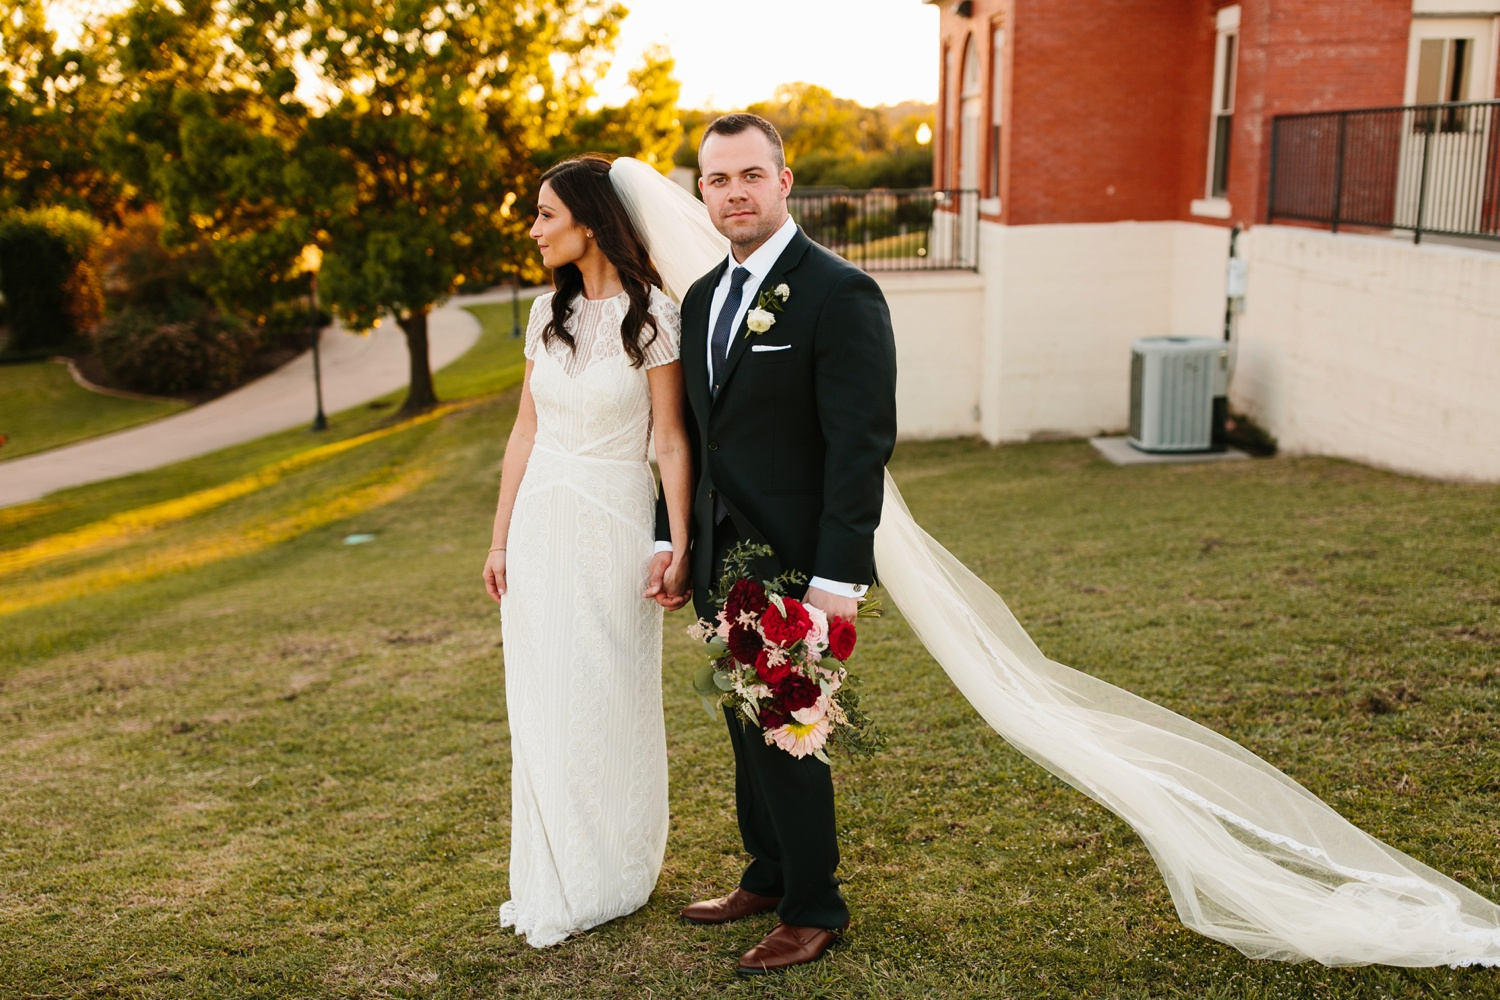 Kadee + Tyler | a raw, emotional wedding at the Filter Building on White Rock Lake in Dallas, TX by North Texas Wedding Photographer, Rachel Meagan Photography 160